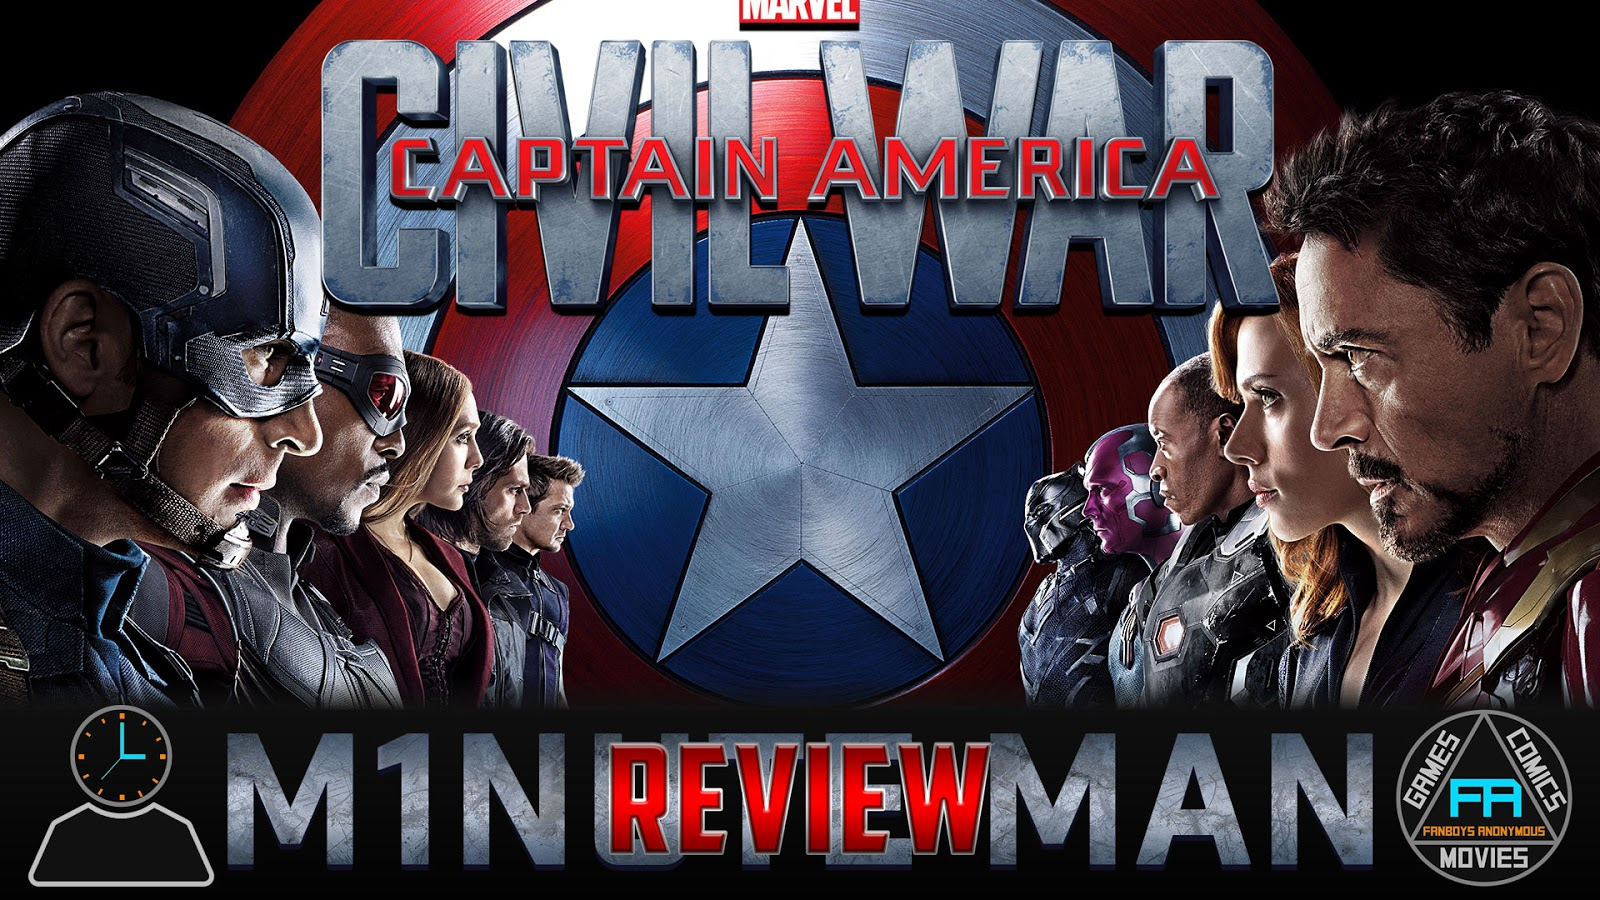 movie review Captain America: Civil War podcast